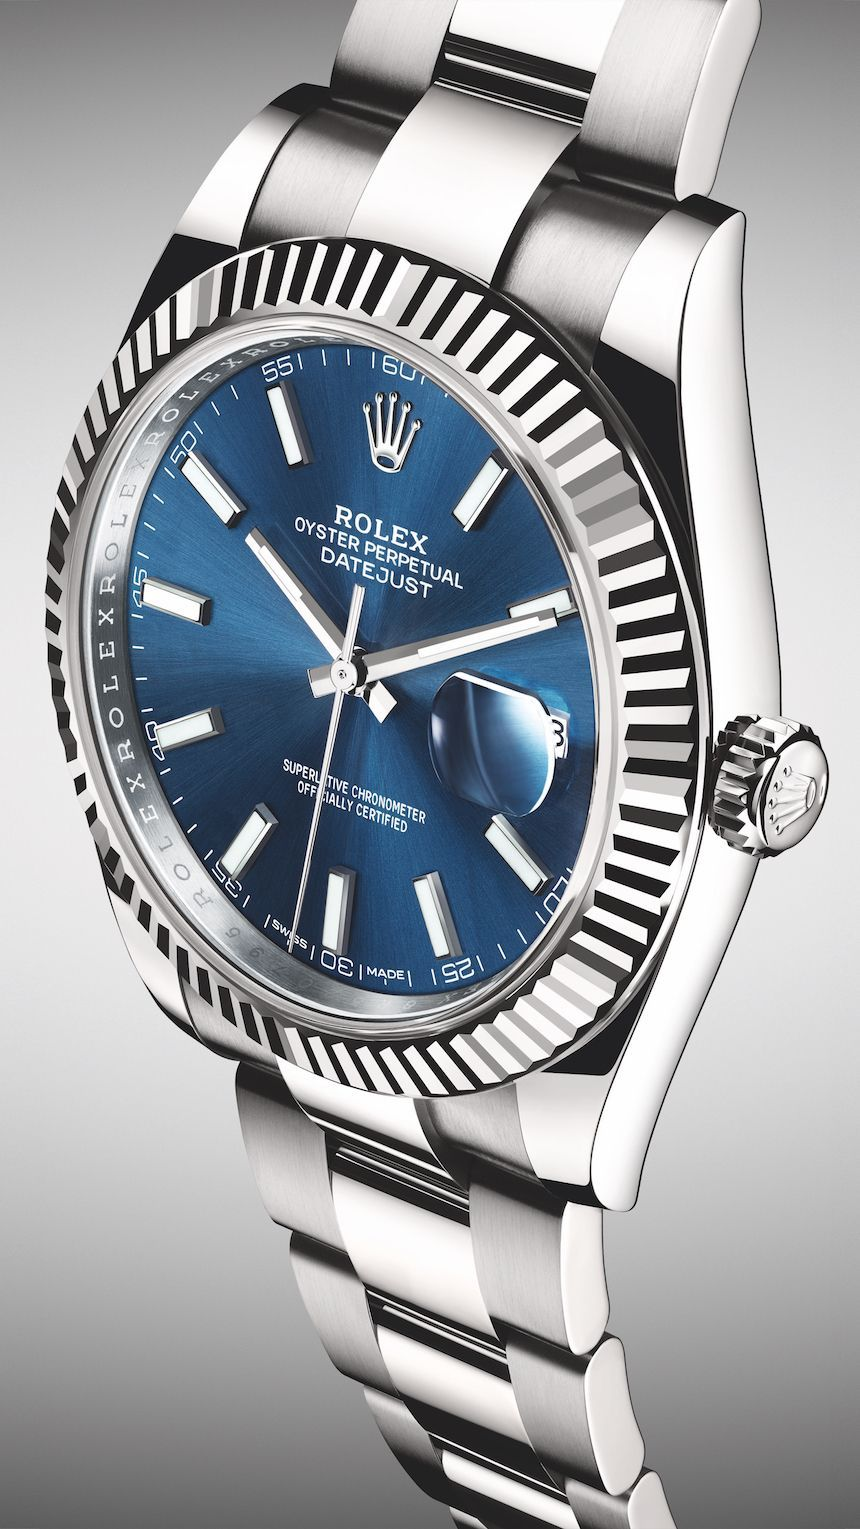 Rolex Datejust 41 126334 Collection  #rolexwatches